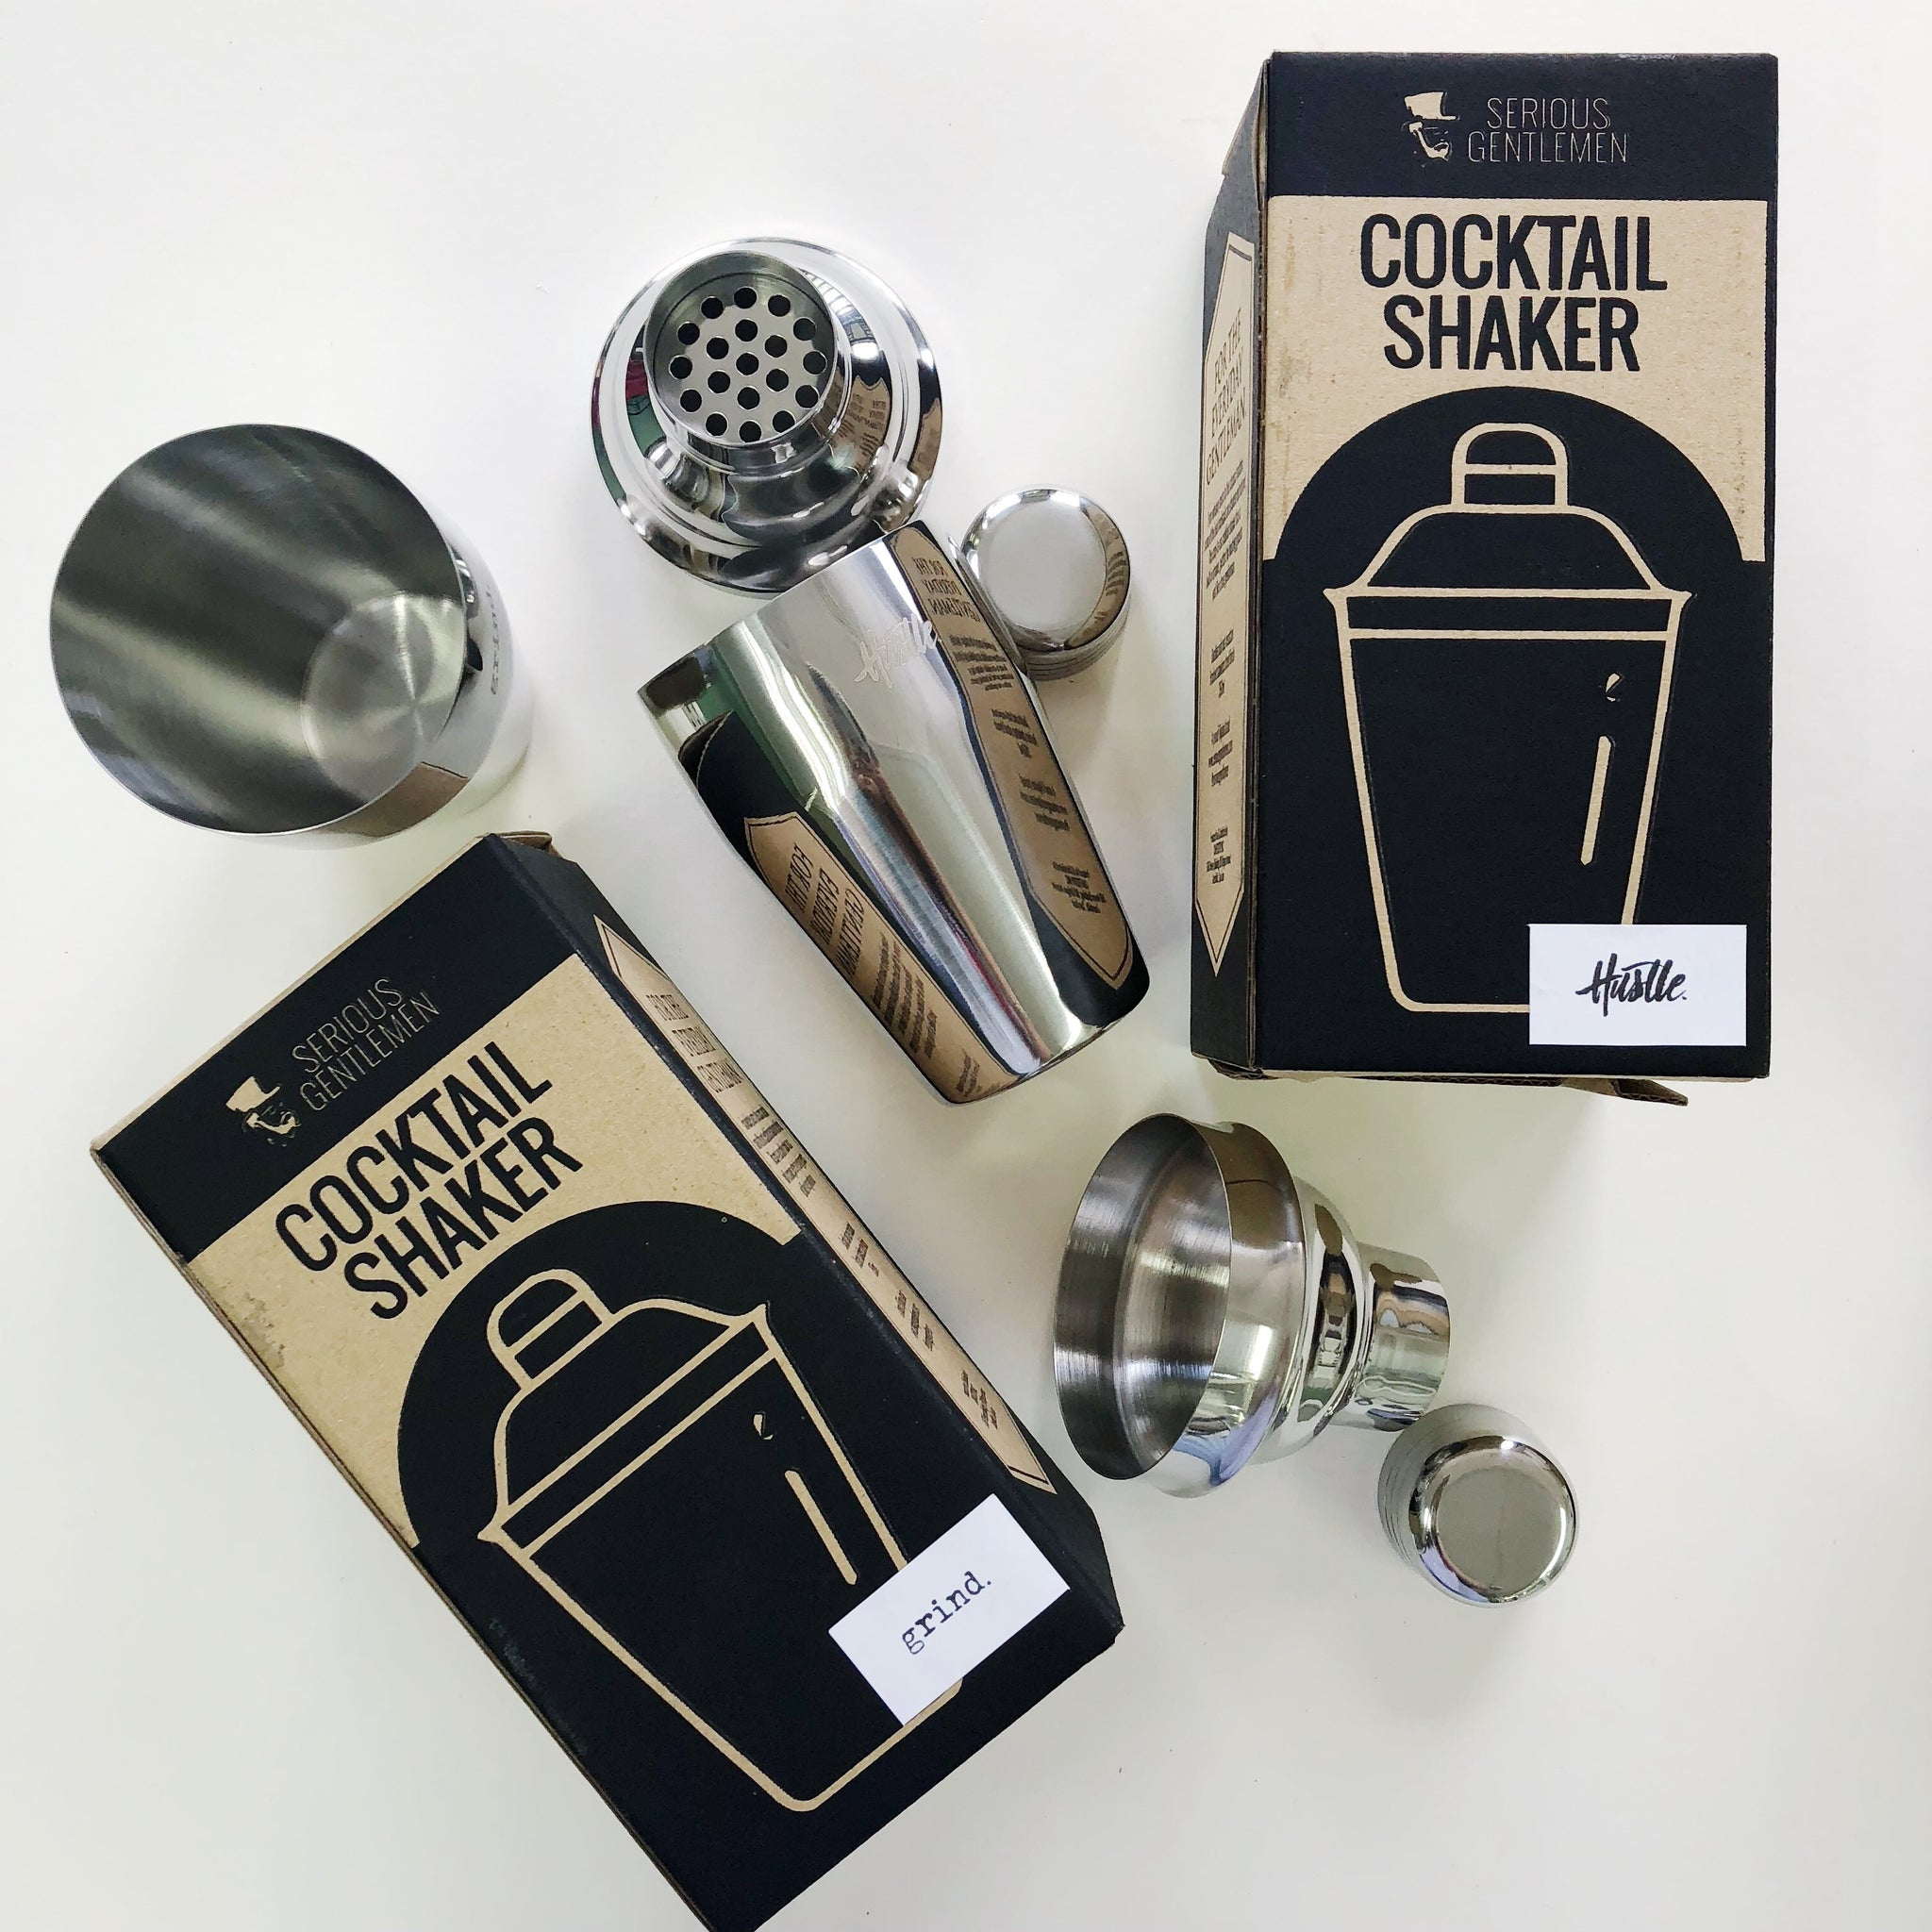 Stainless Steel Boston Shaker - Grind